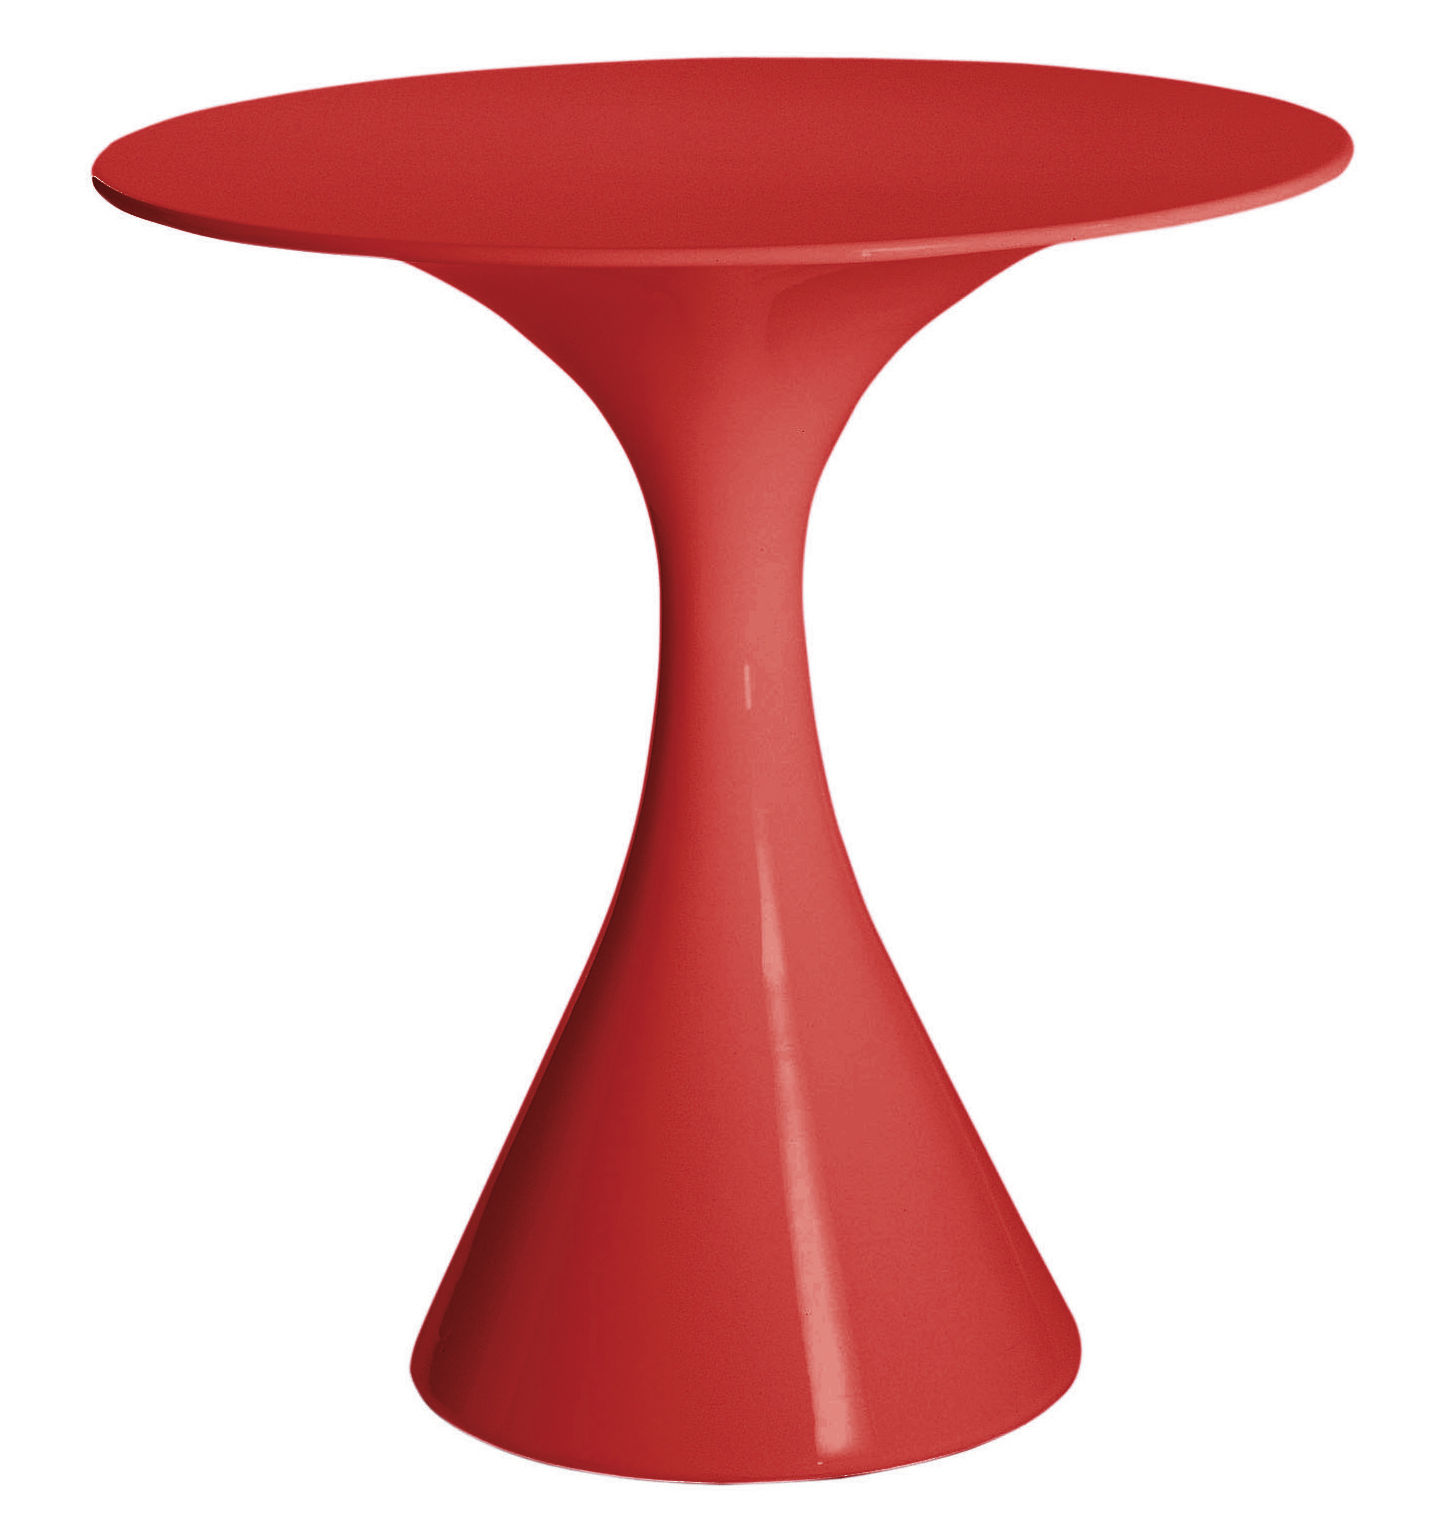 Outdoor - Garden Tables - Kissi Kissi Table ronde by Driade - Red - Polythene